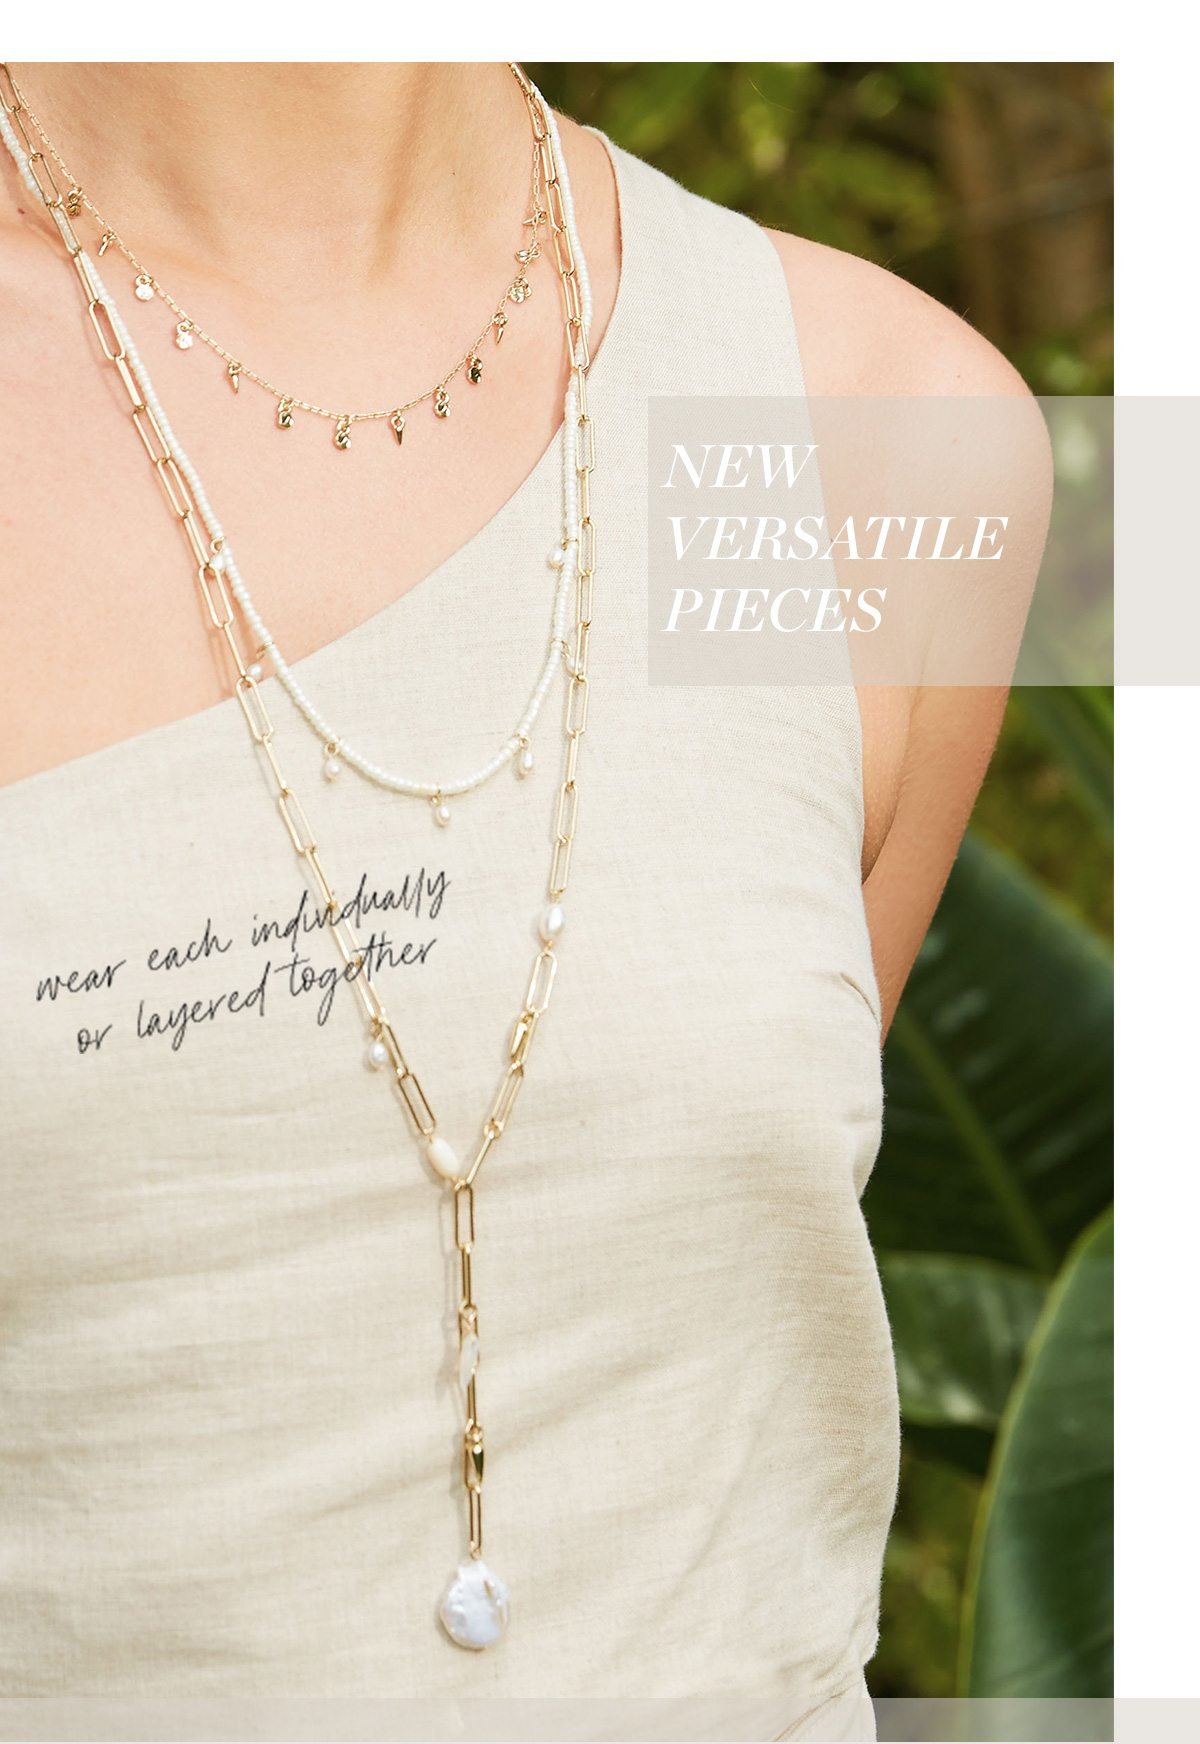 Triple Layered Necklace, so much versatility